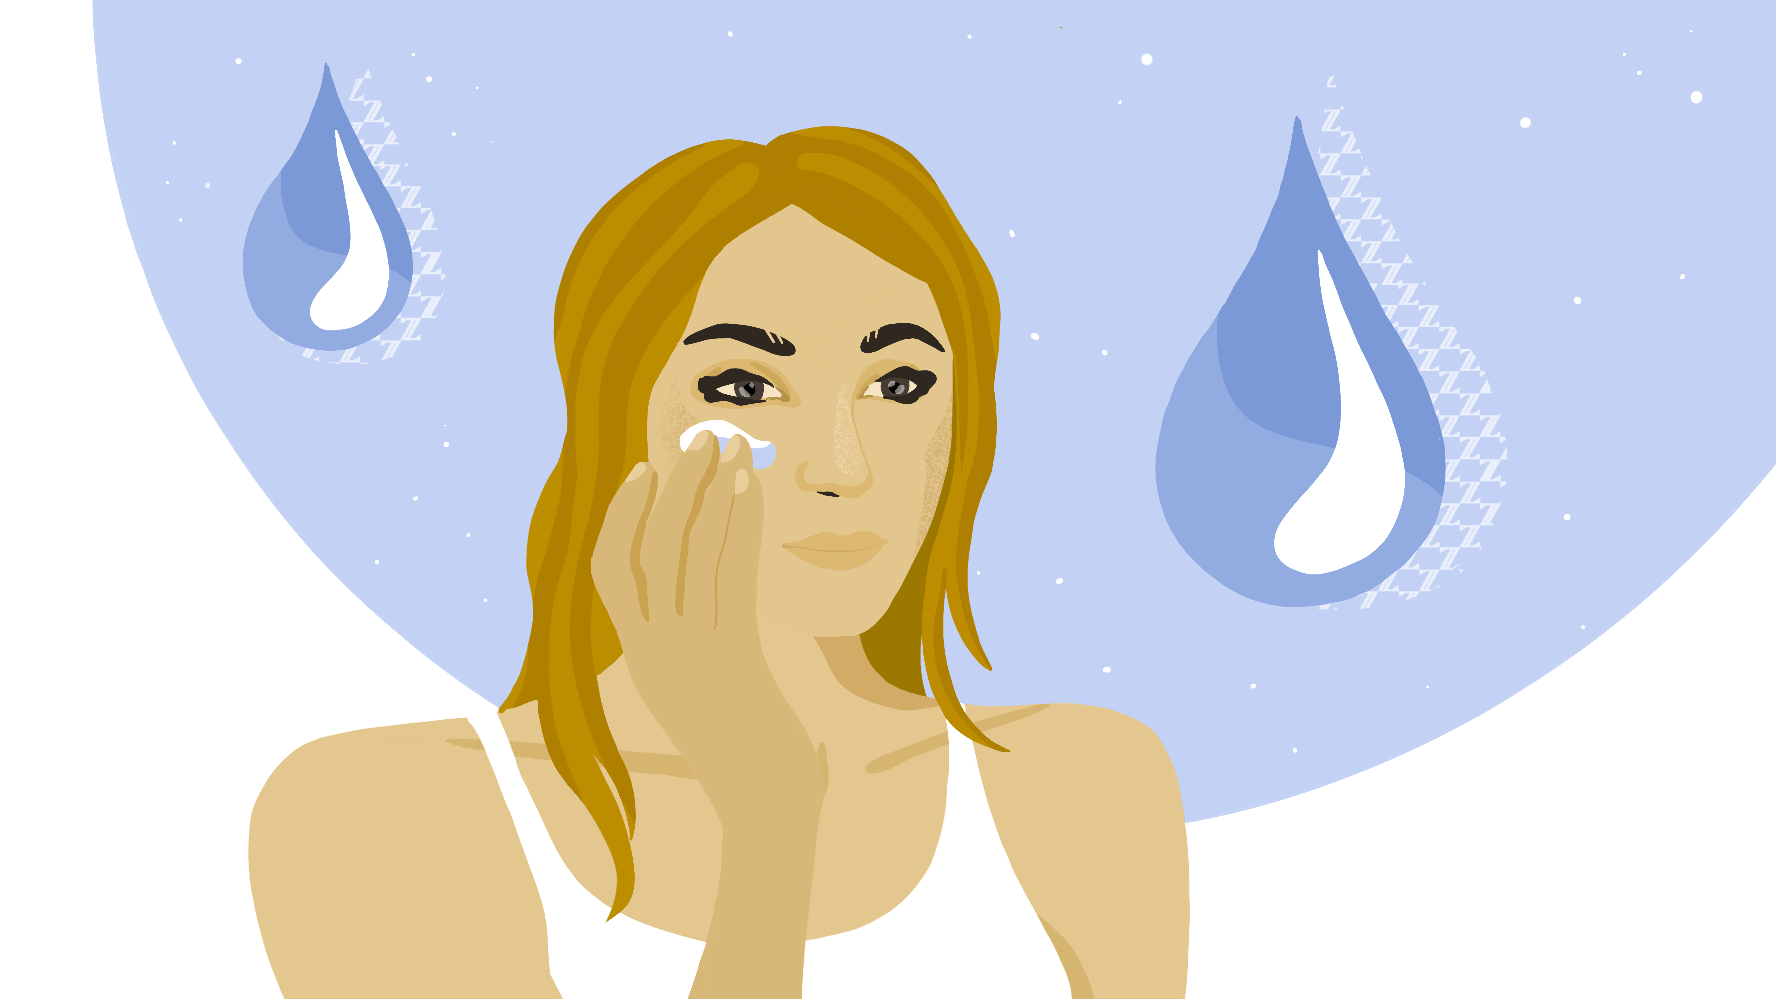 When should I apply my moisturizer?